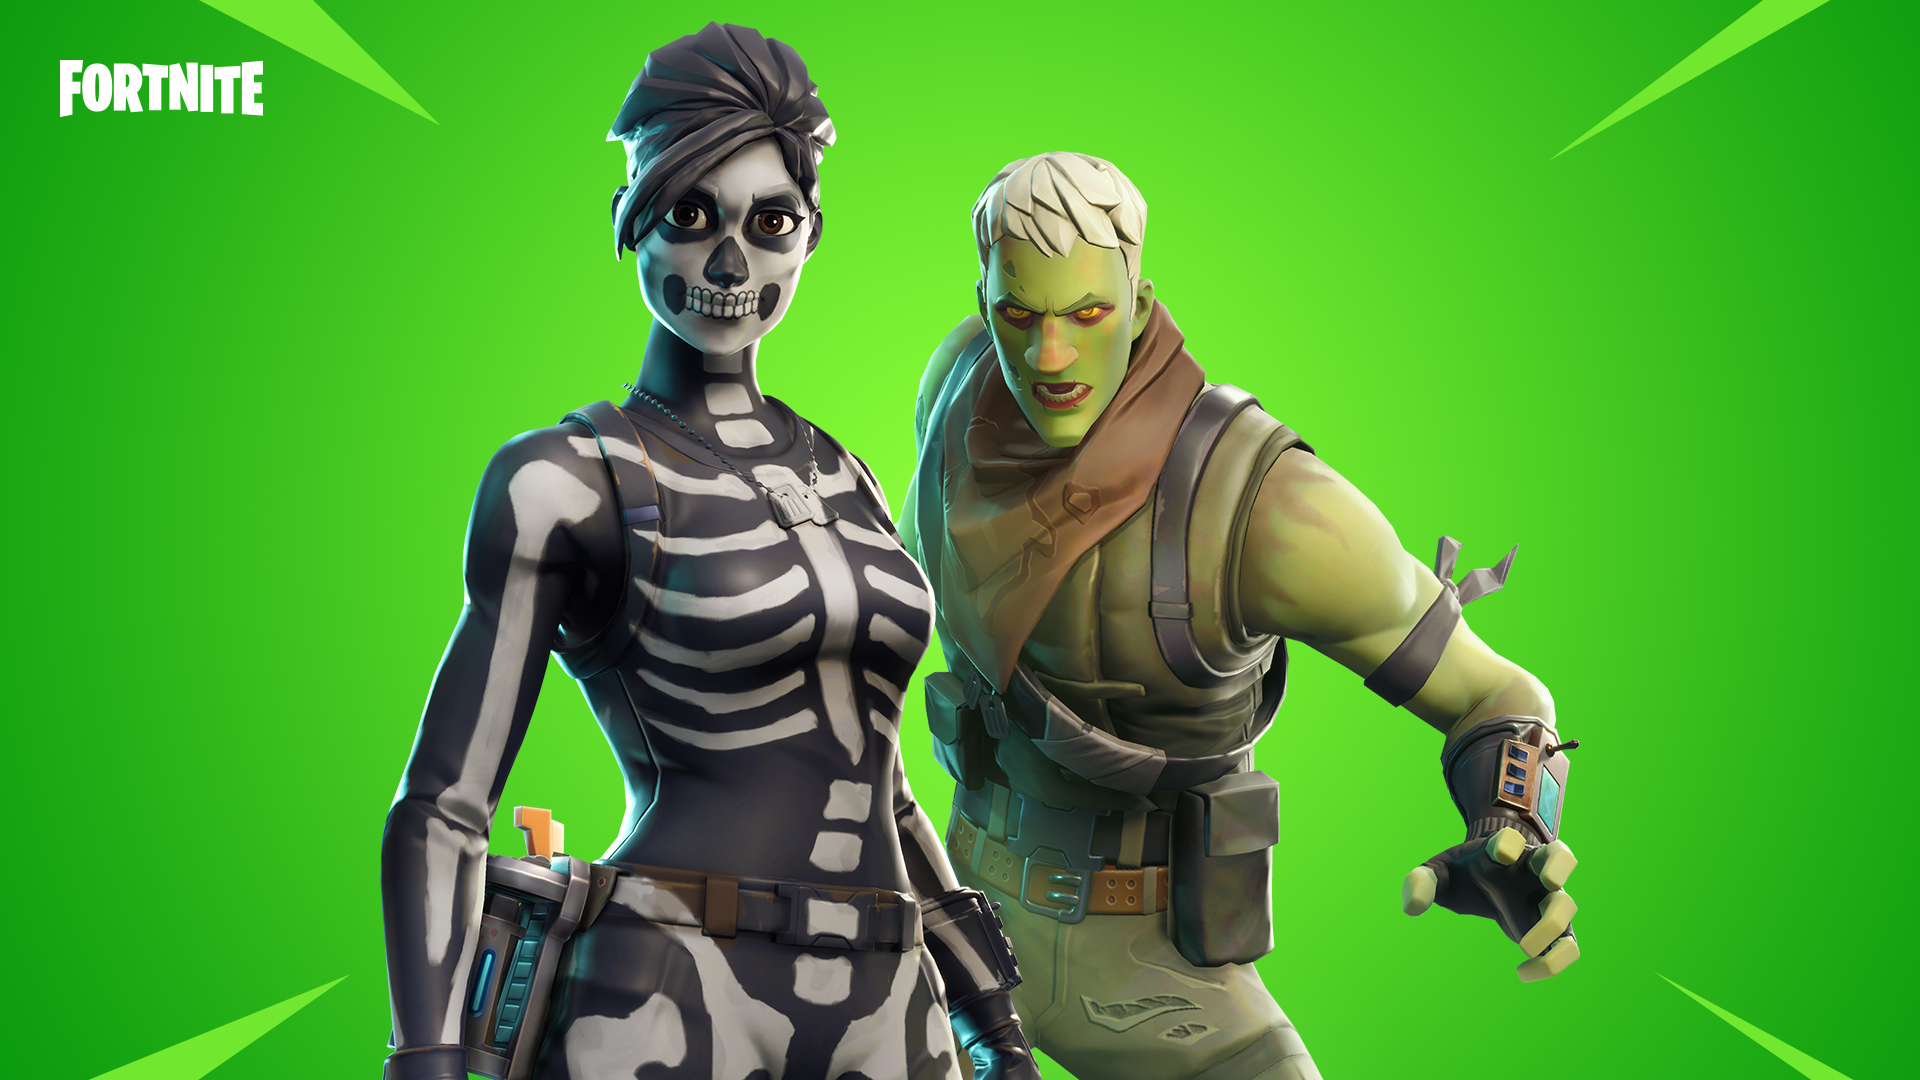 New Fortnite Halloween Skins Are Coming To The Game